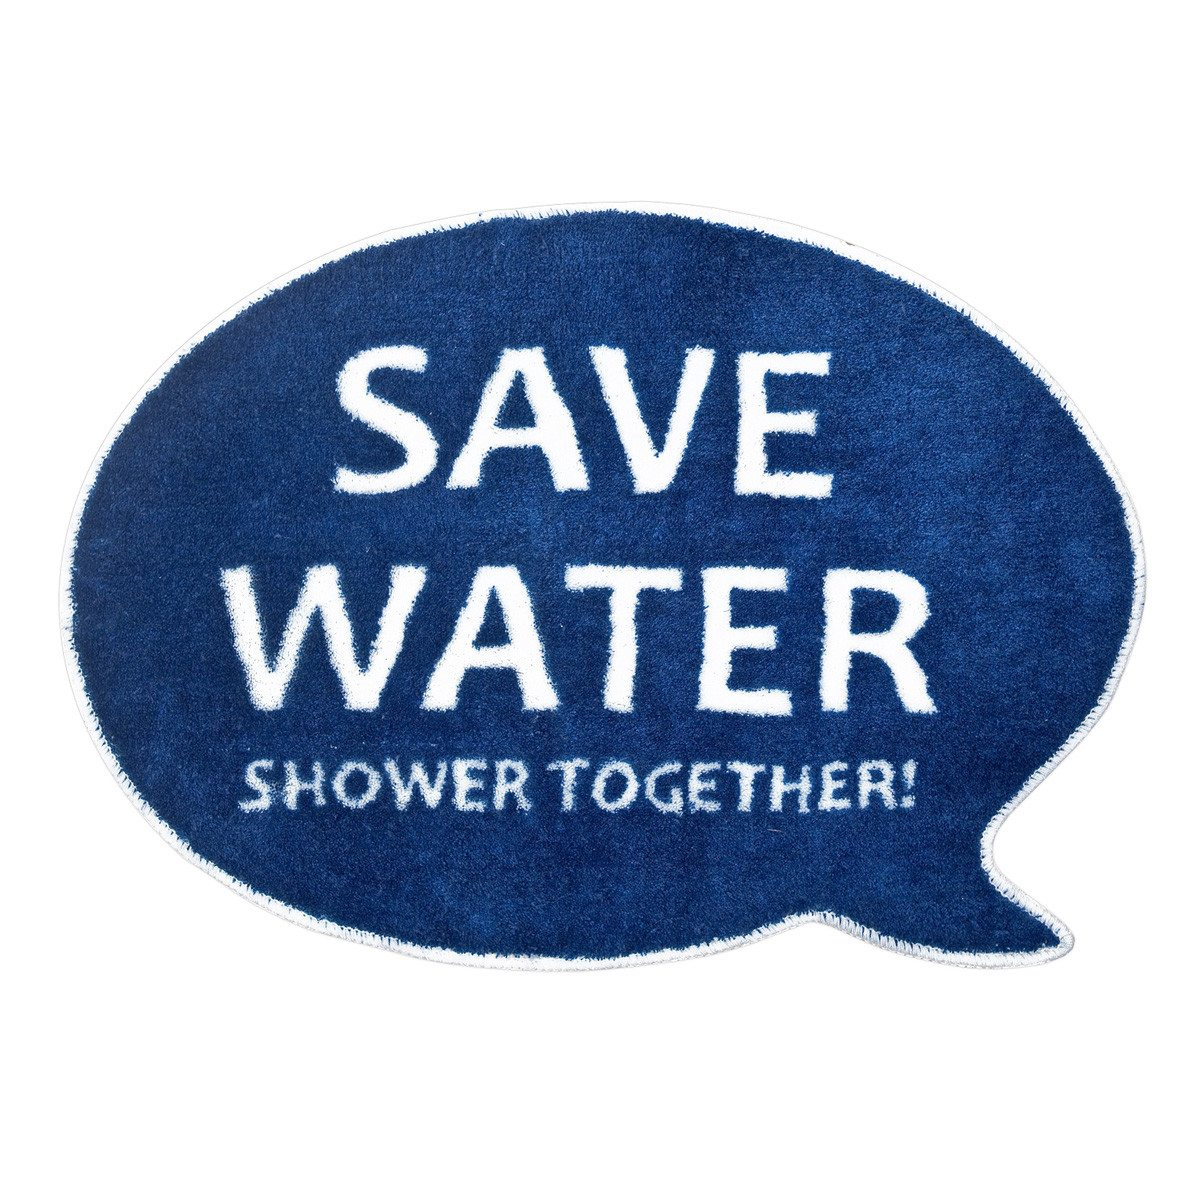 "Douchemat ""Save Water, Shower Together!"""